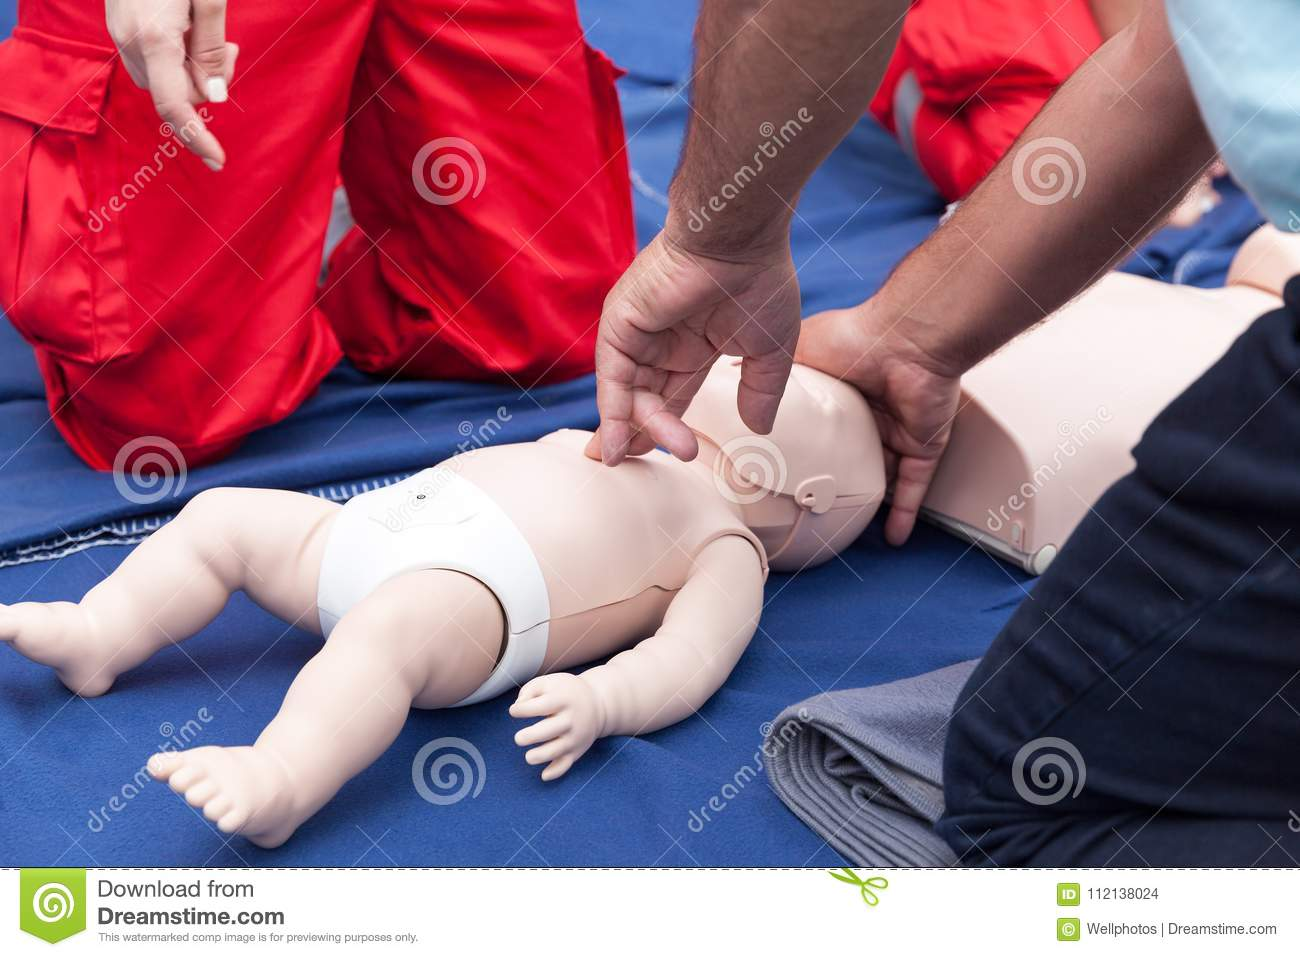 728a2b3867 Child or baby first aid training. Cardiopulmonary resuscitation - CPR.